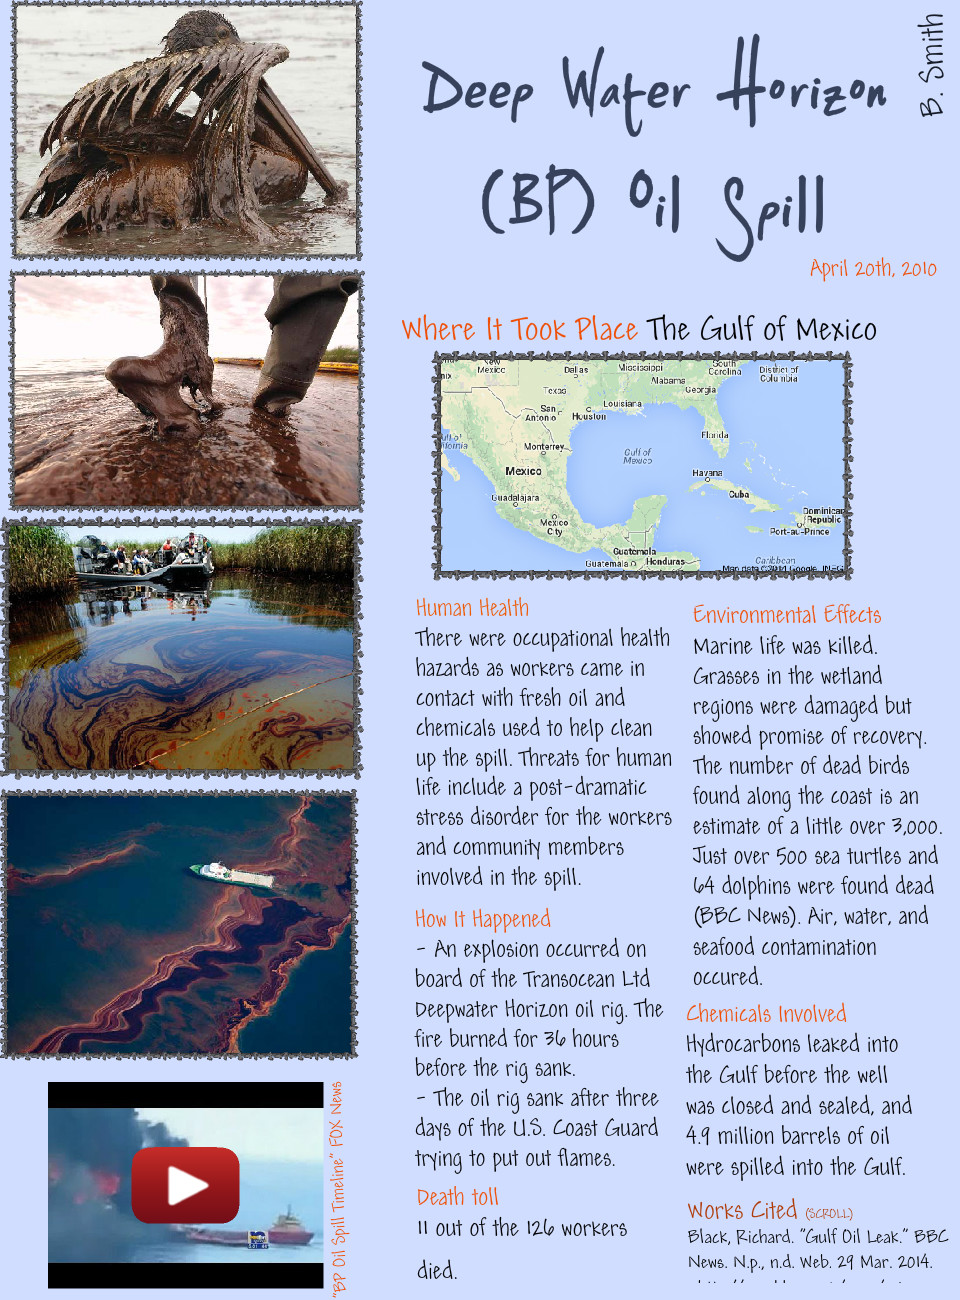 Deep Water Horizon (BP) Oil Spill